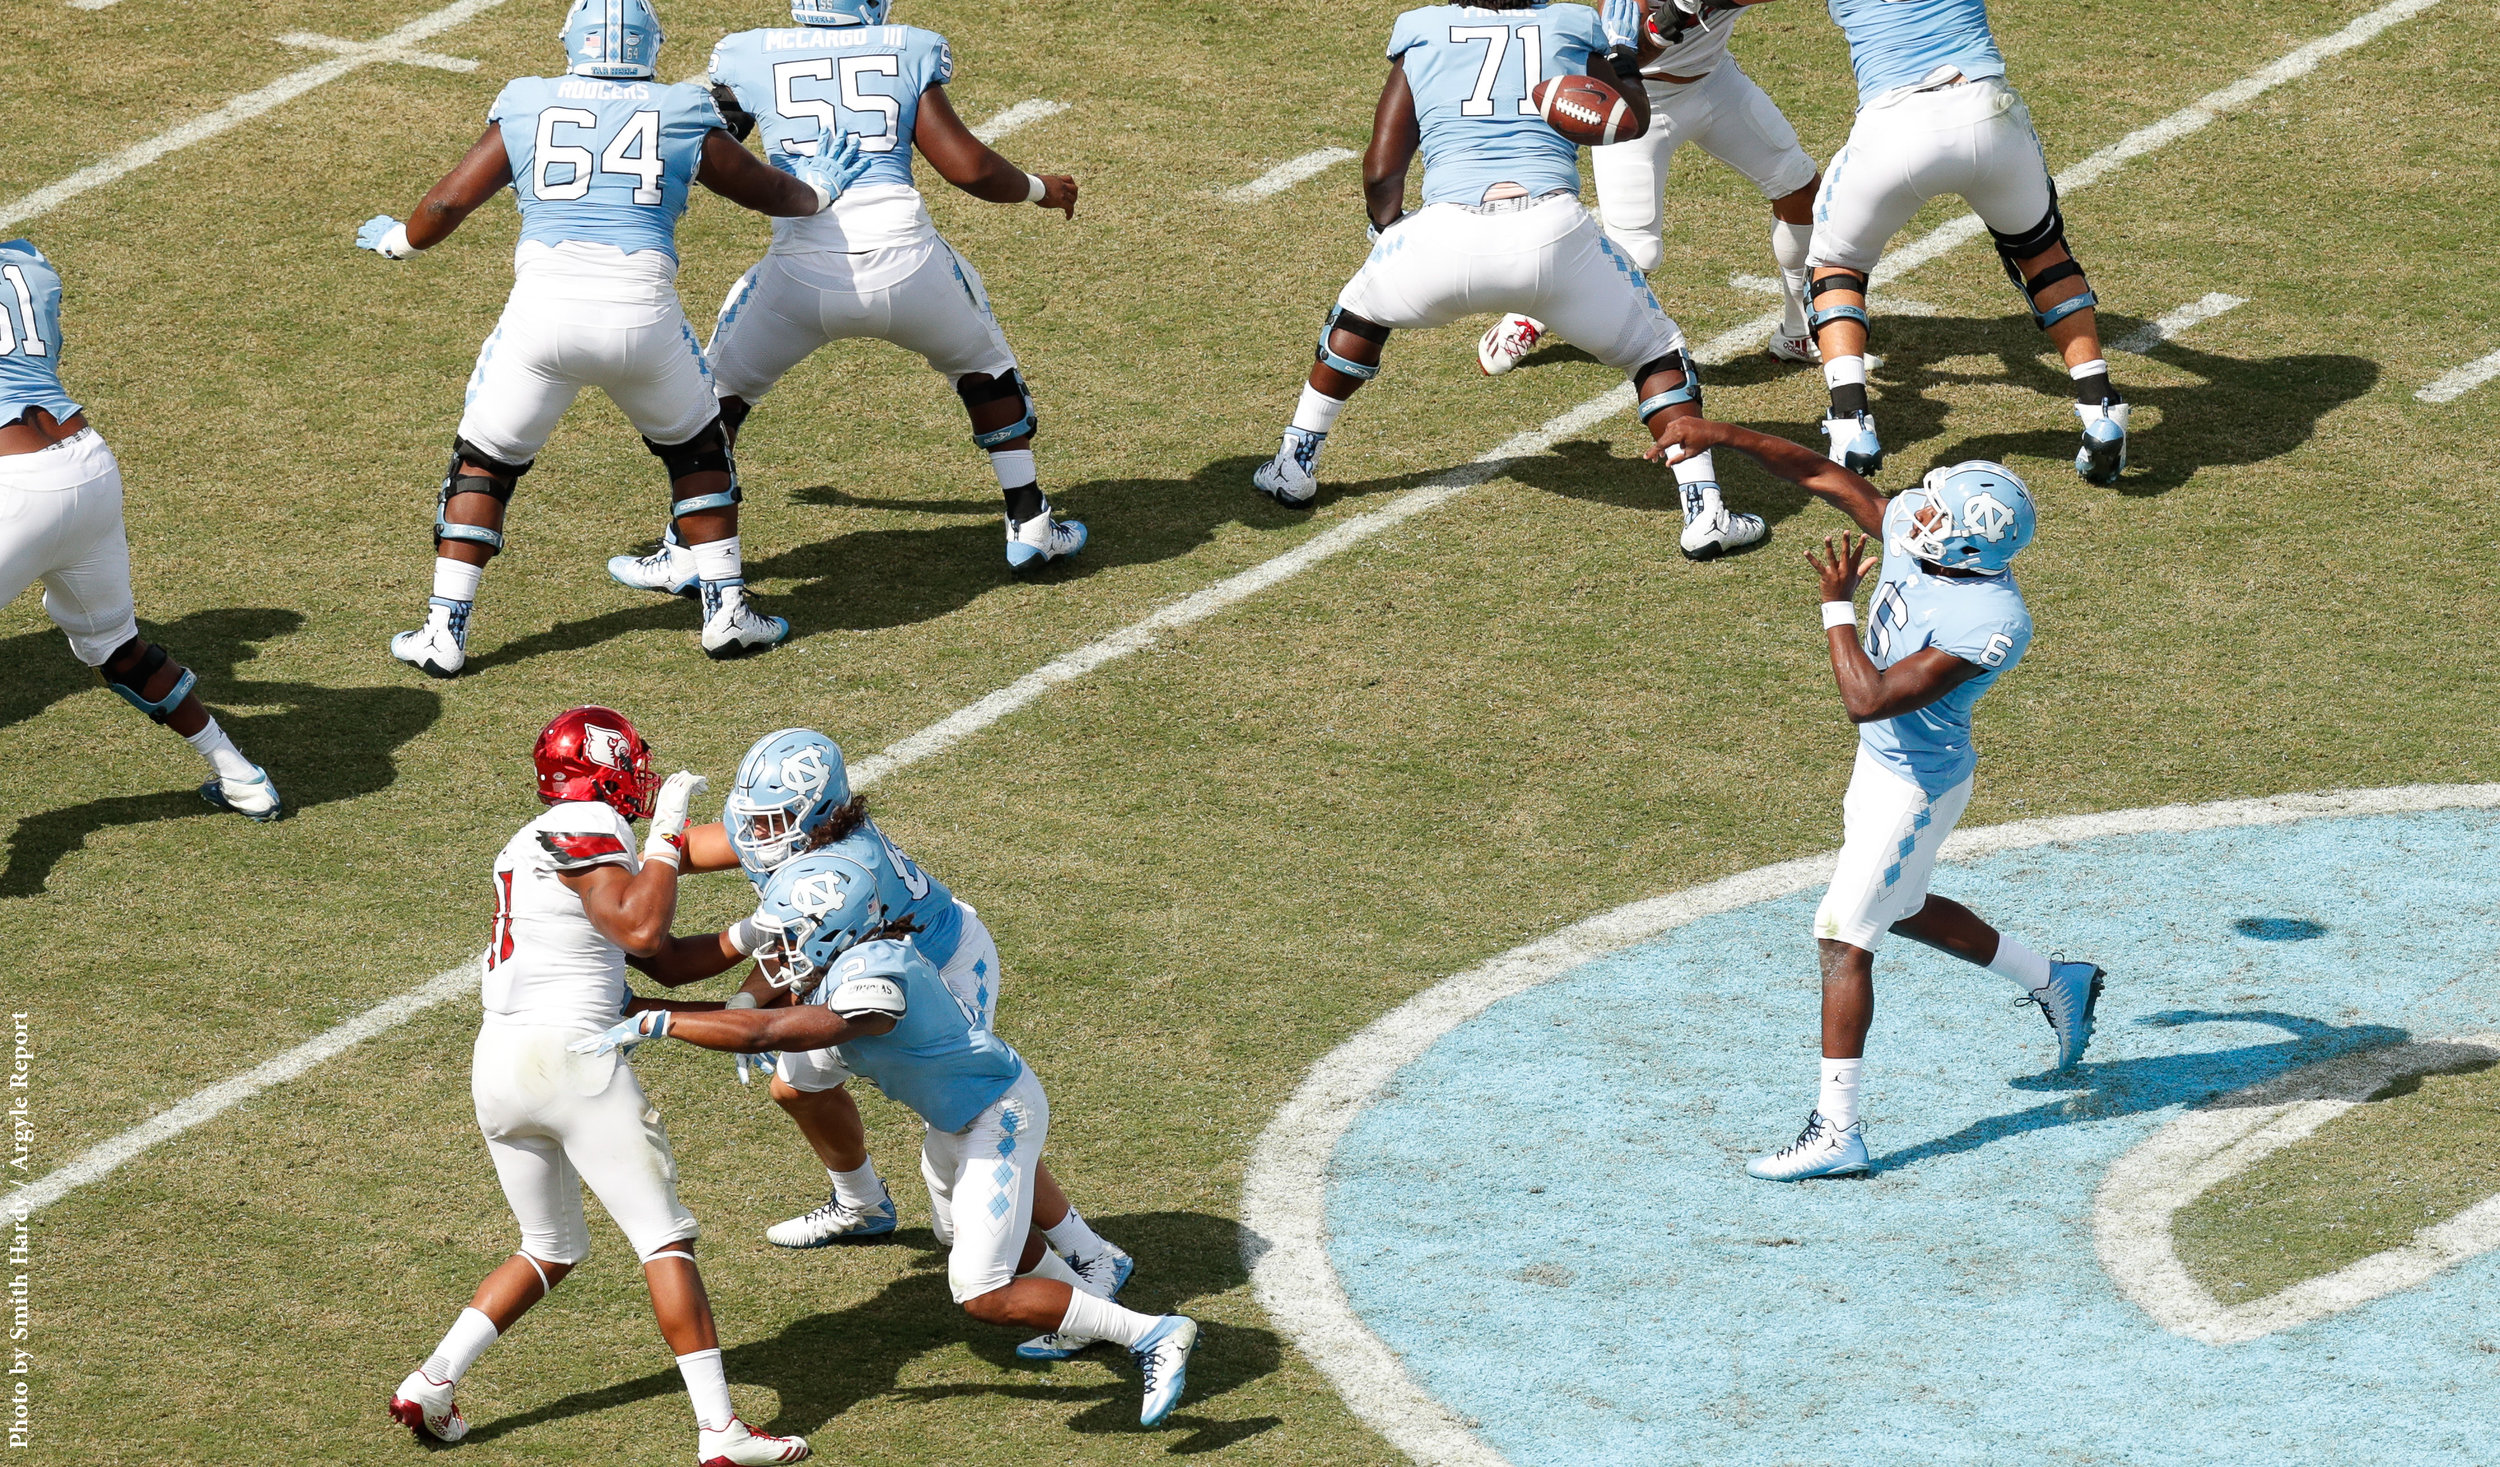 Tarheels vs Cards Football 2017 (18 of 25).jpg